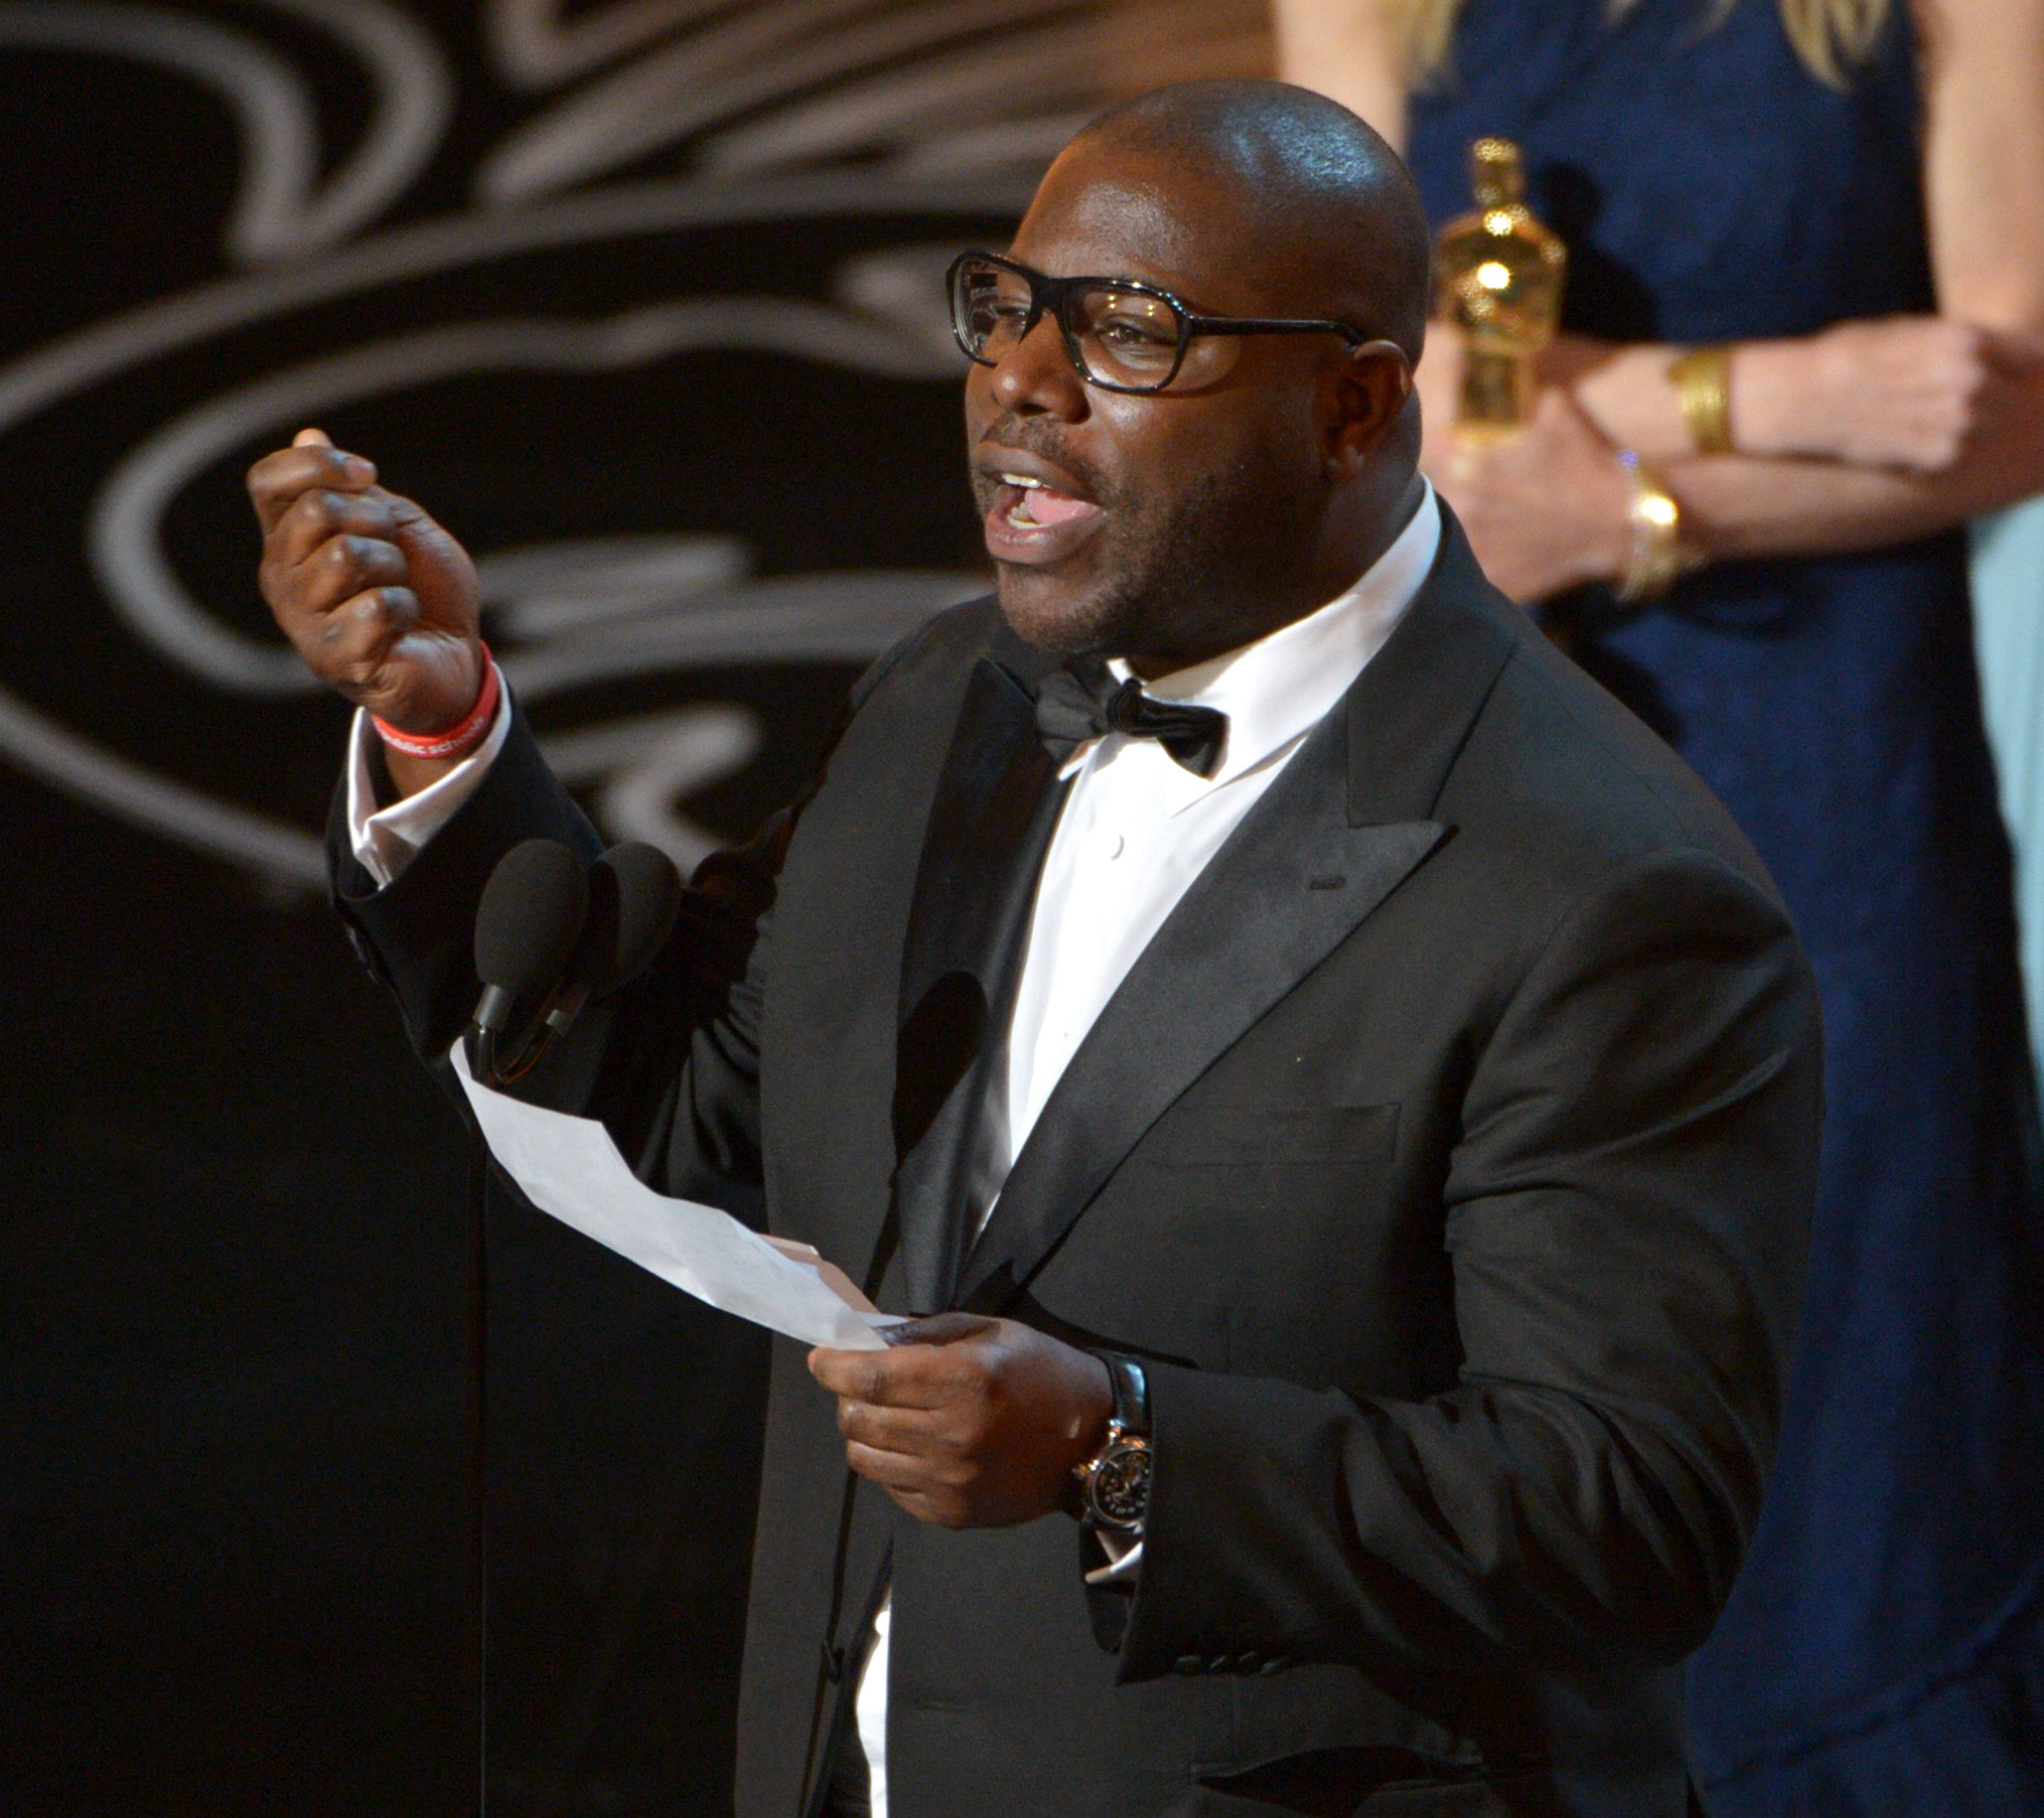 '12 Years a Slave' takes top Oscar